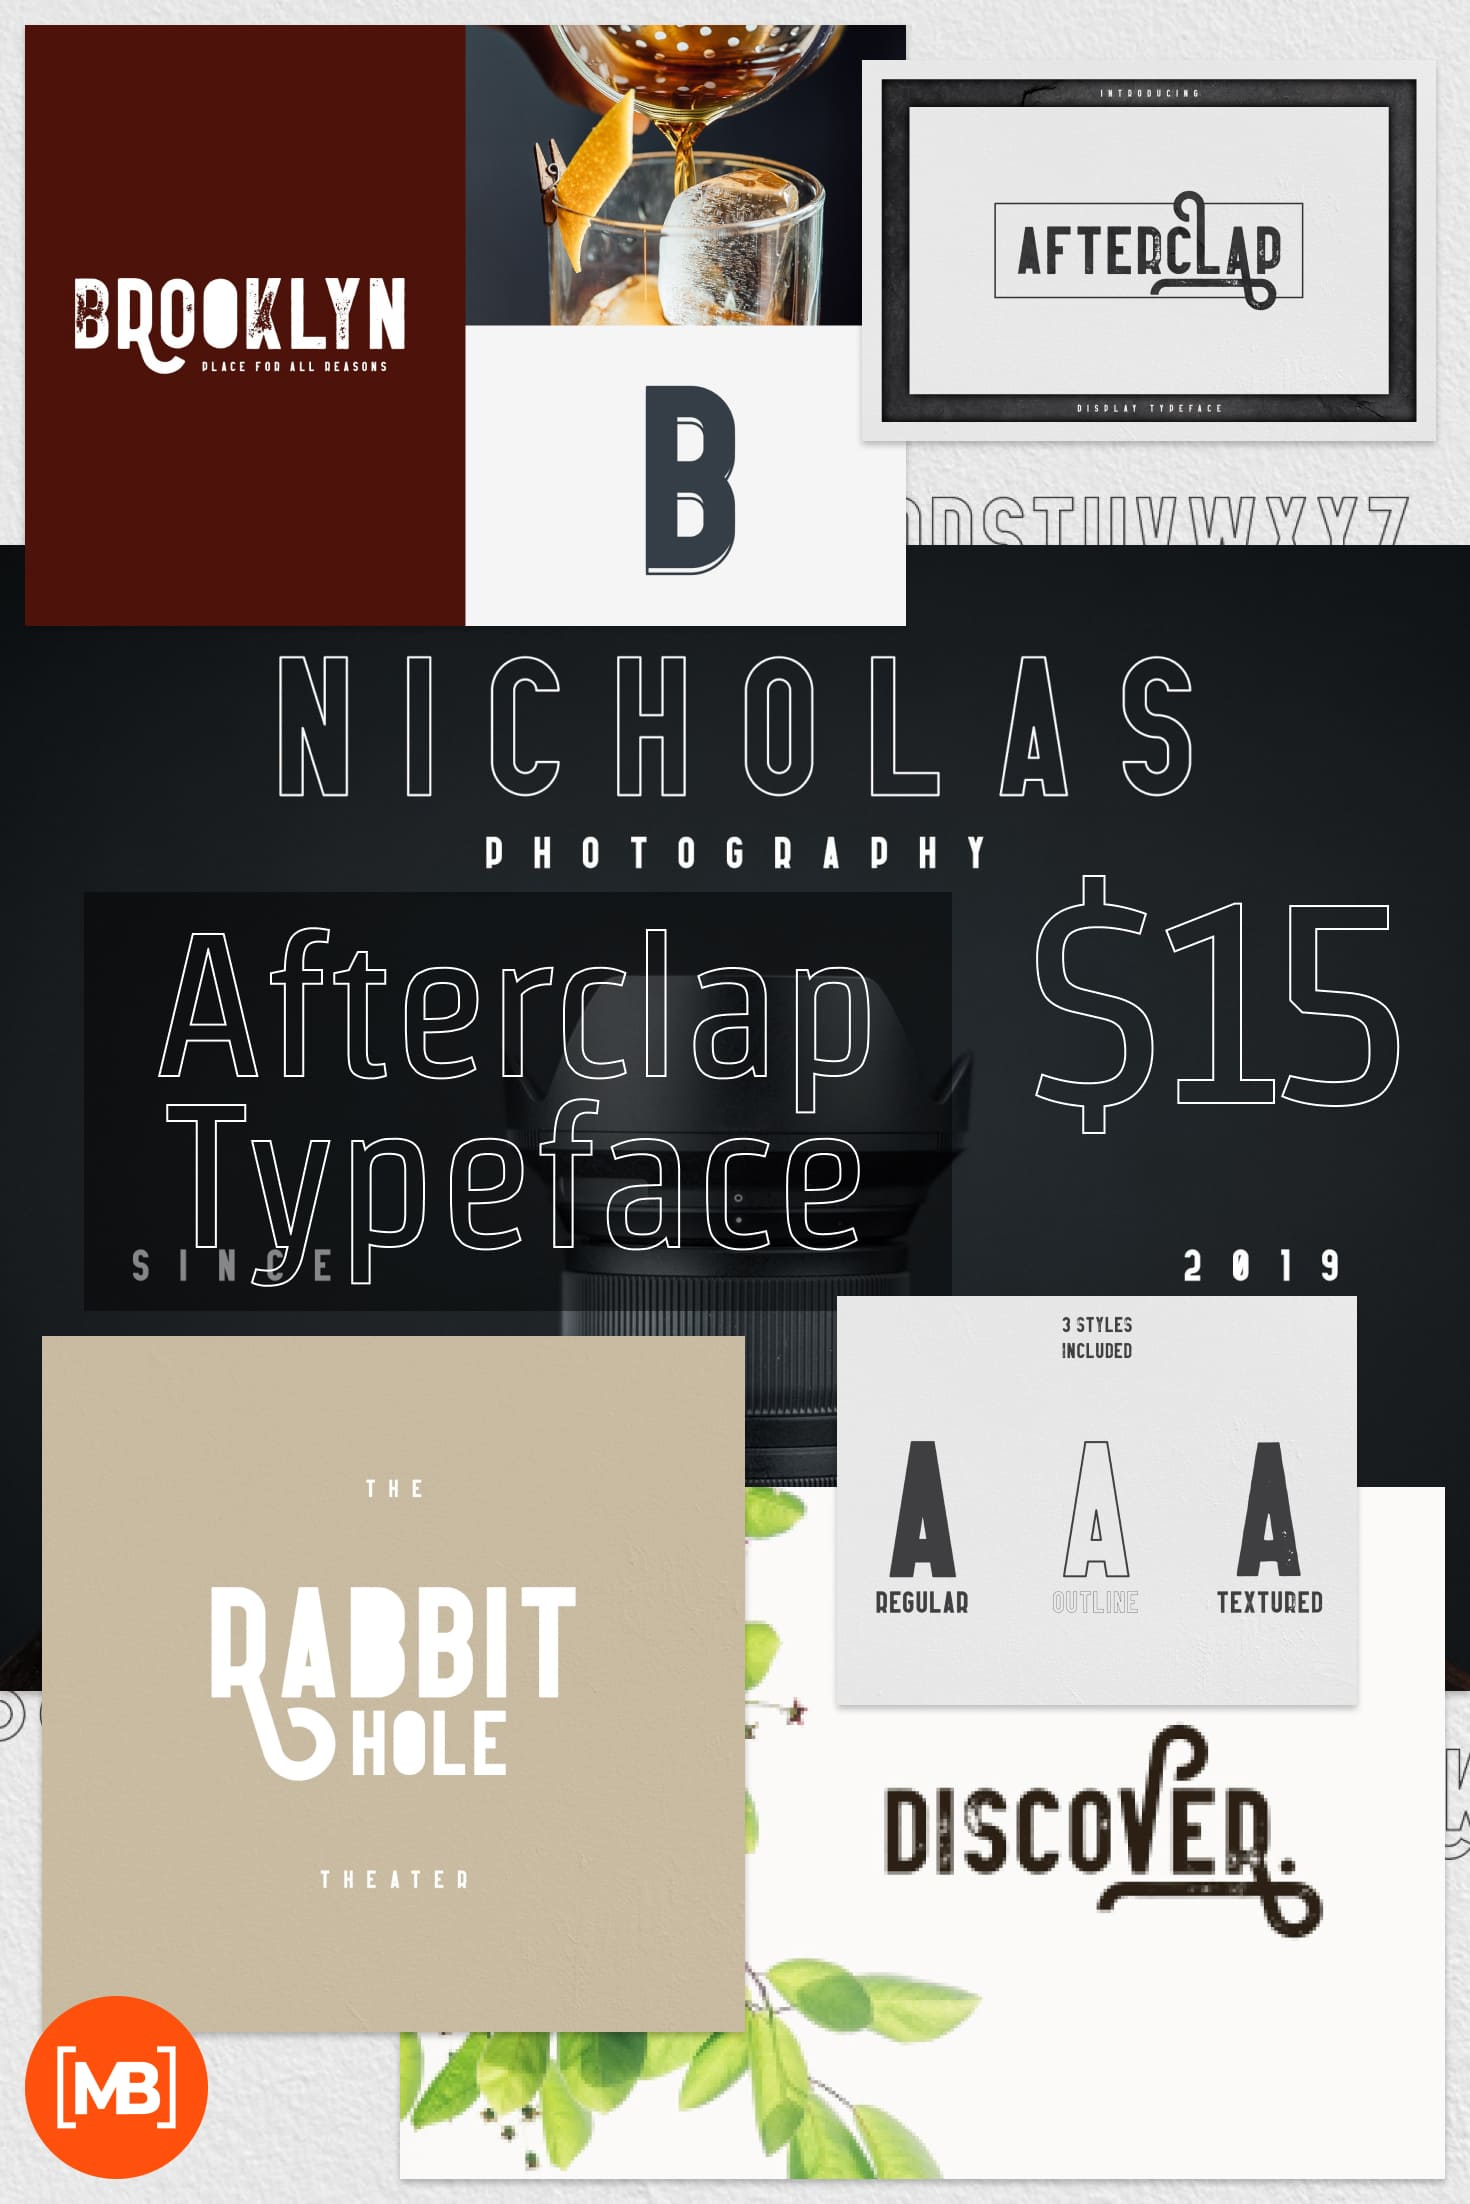 Pinterest Image: Afterclap Typeface - 3 Styles Playfair Display Font.